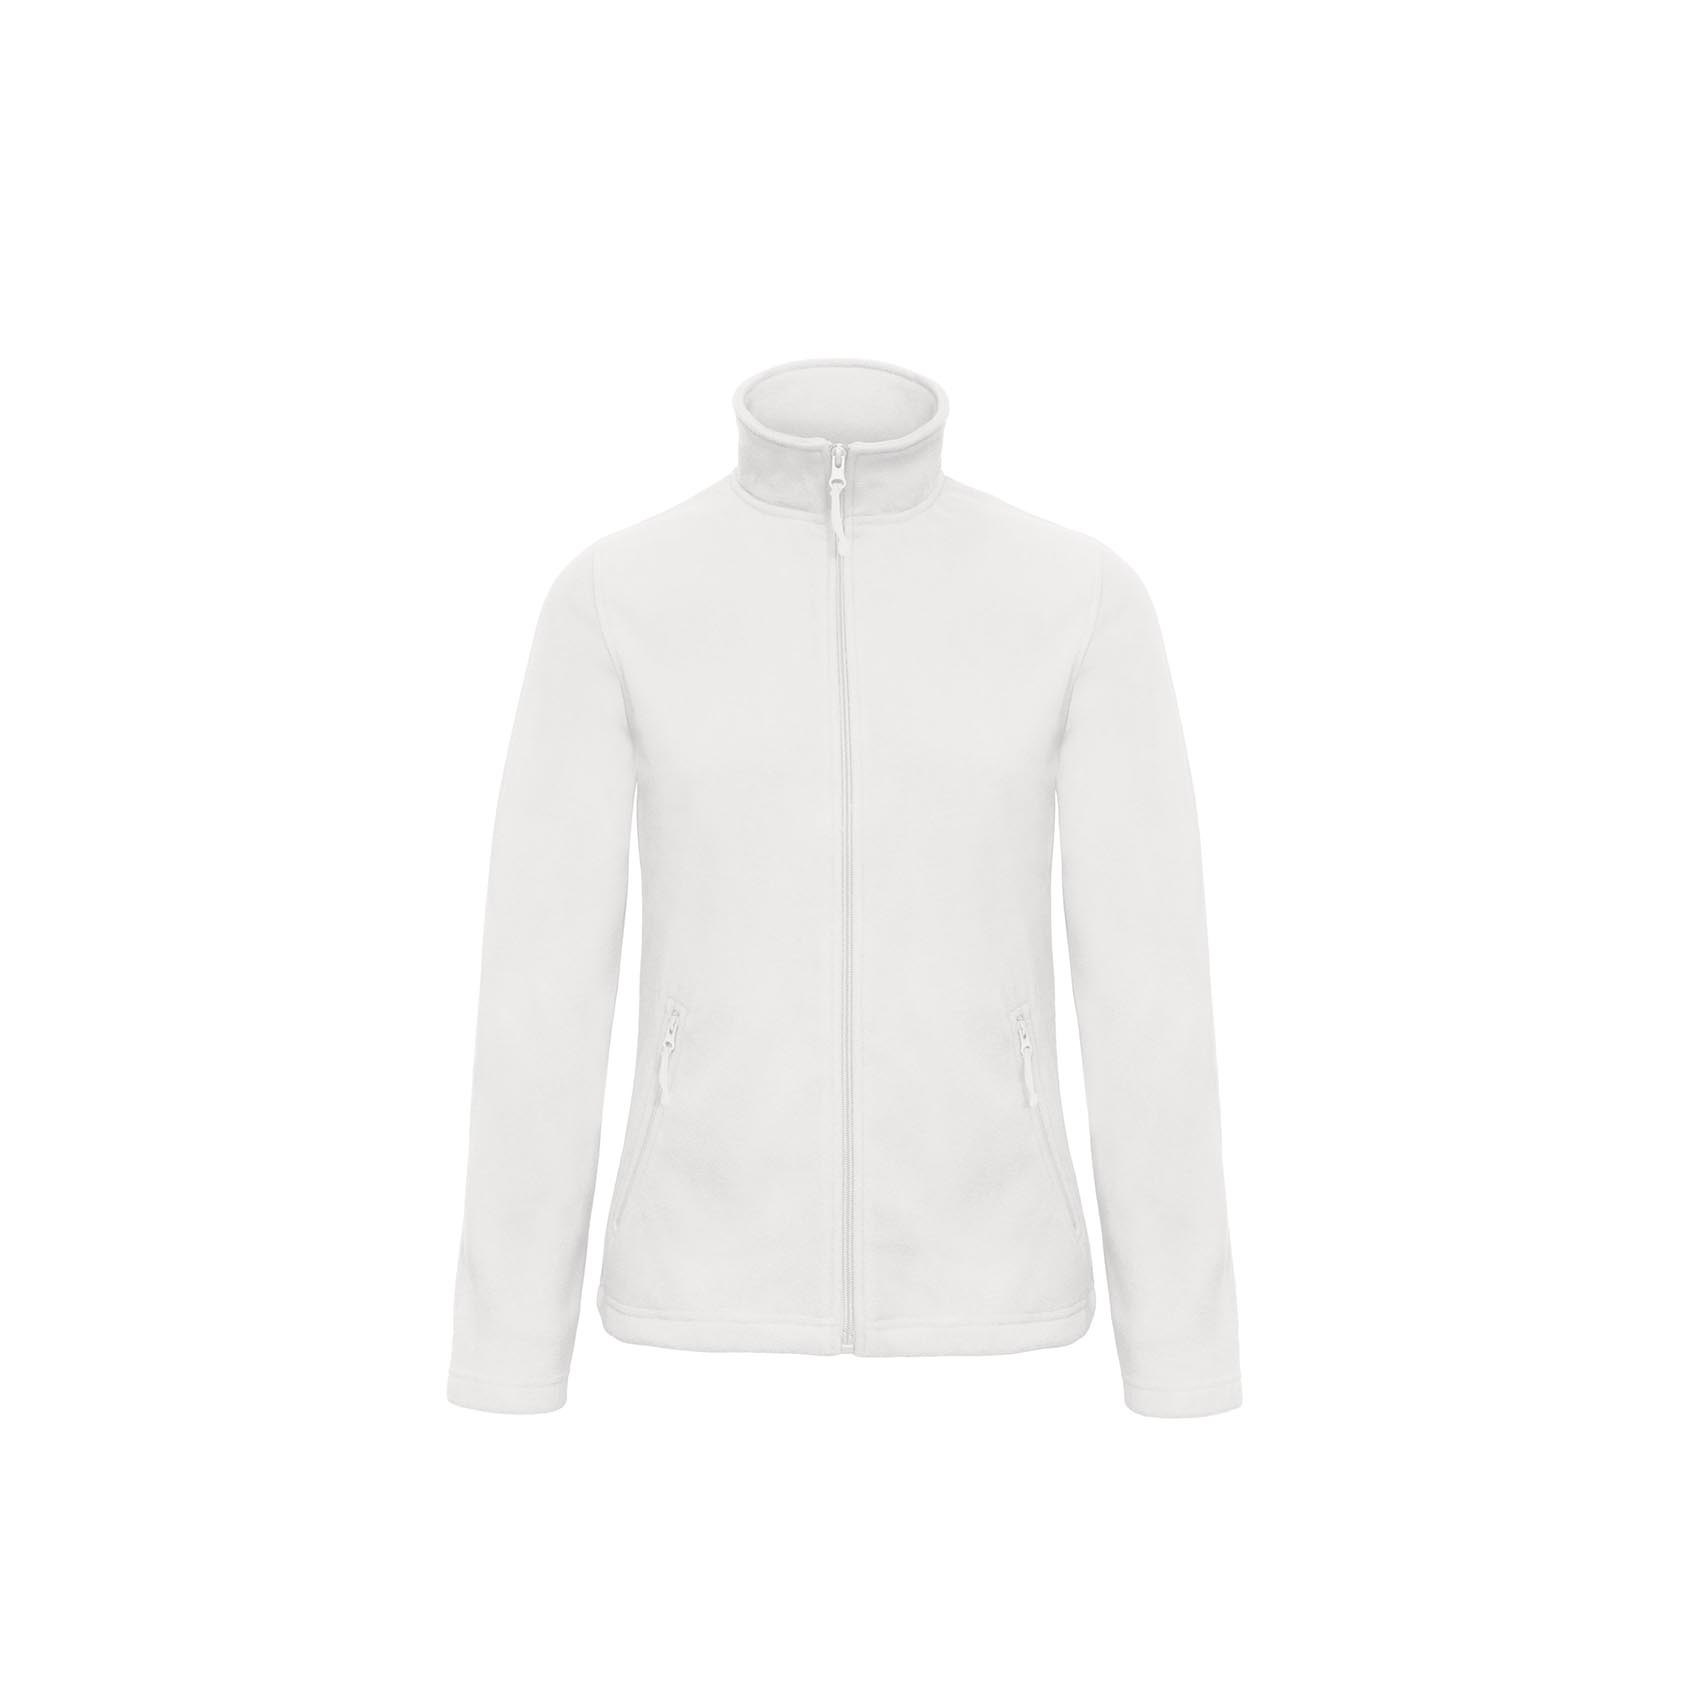 B/&C Collection Womens//Ladies ID 501 Microfleece Jacket